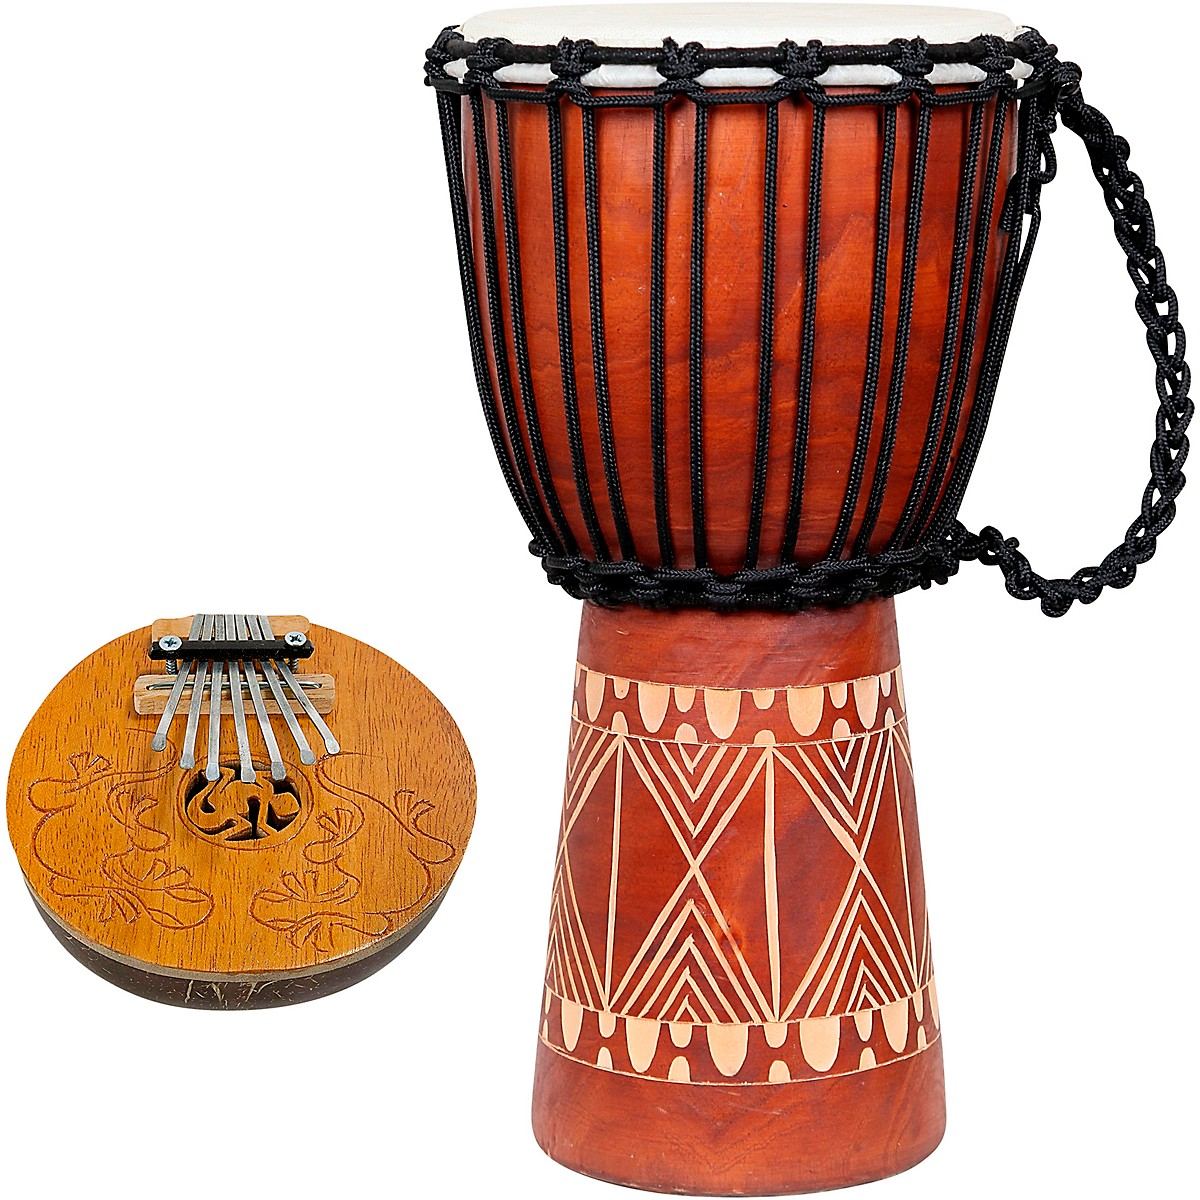 X8 Drums Groove Djembe with Kalimba